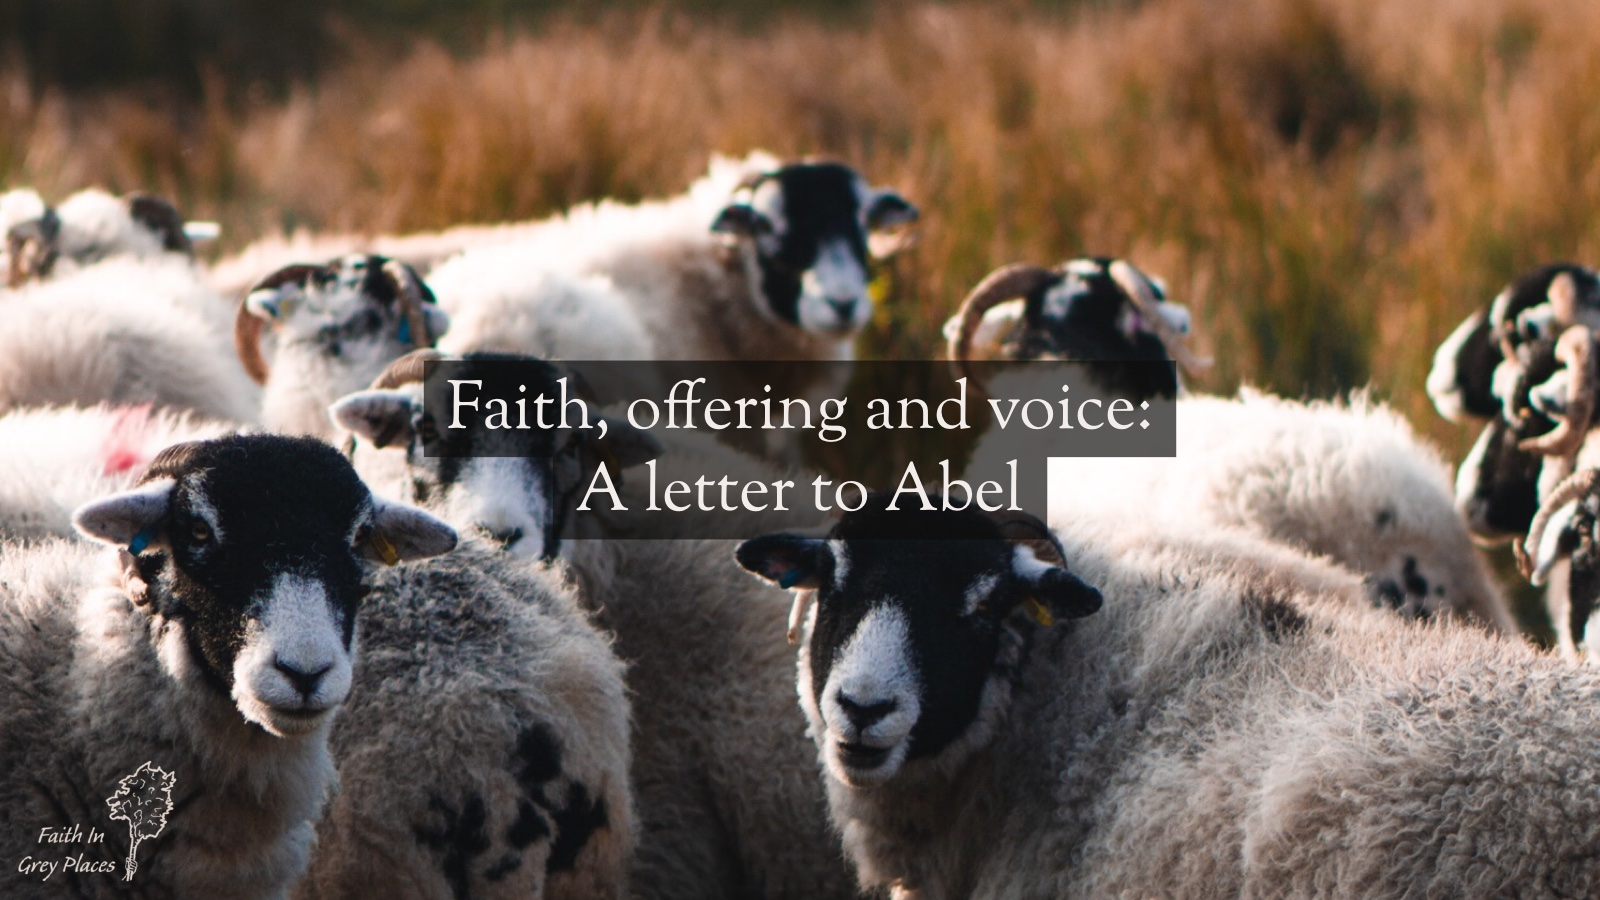 Ewes and rams with black heads standing in a field looking at the camera in the evening light. Text: Faith, offering and voice: A letter to Abel